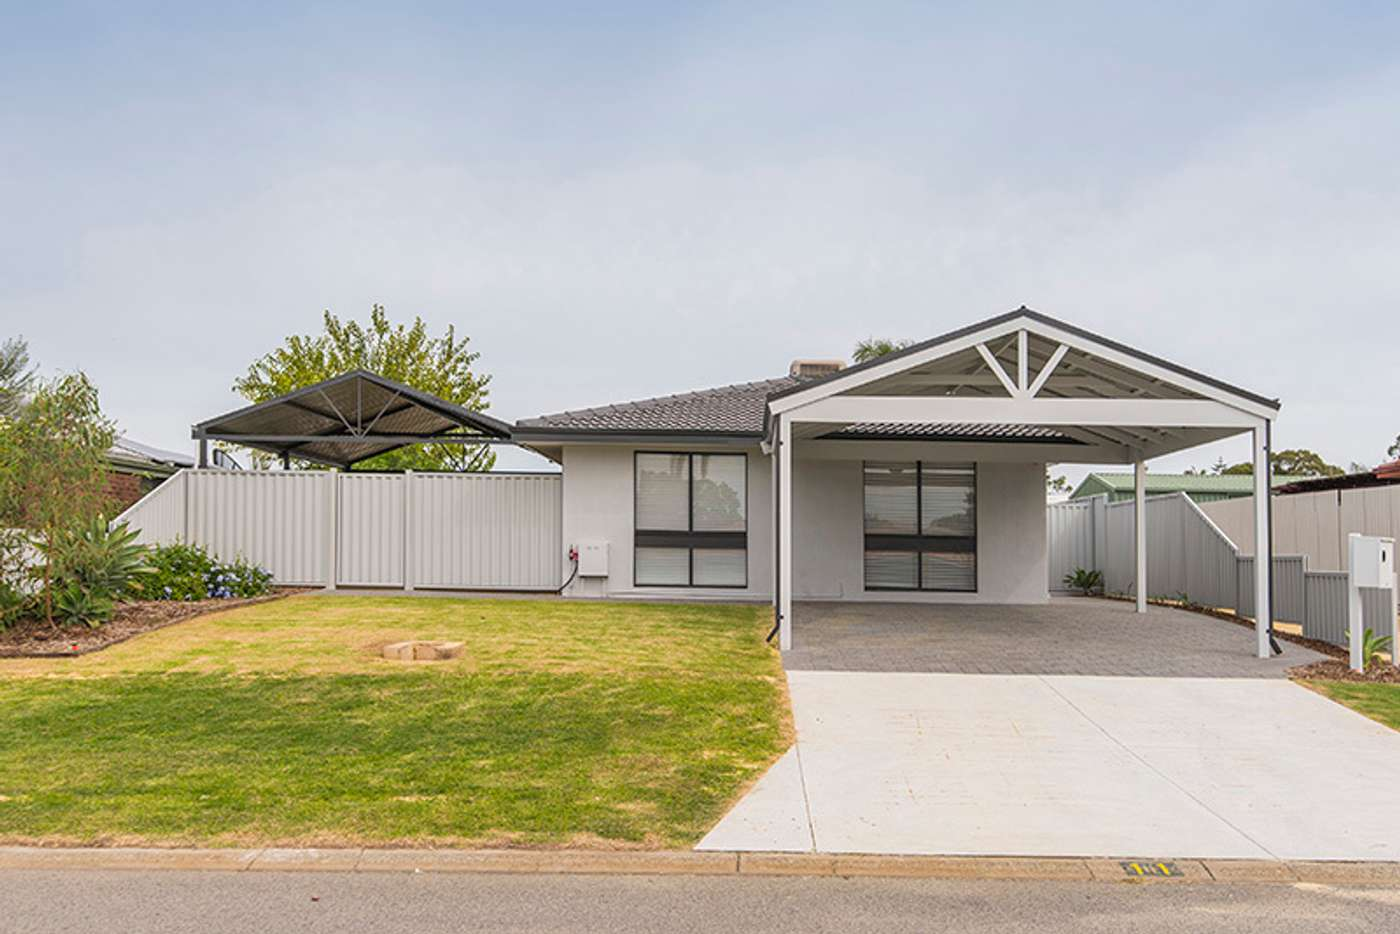 Main view of Homely house listing, 11 Meagher Way, Beechboro WA 6063